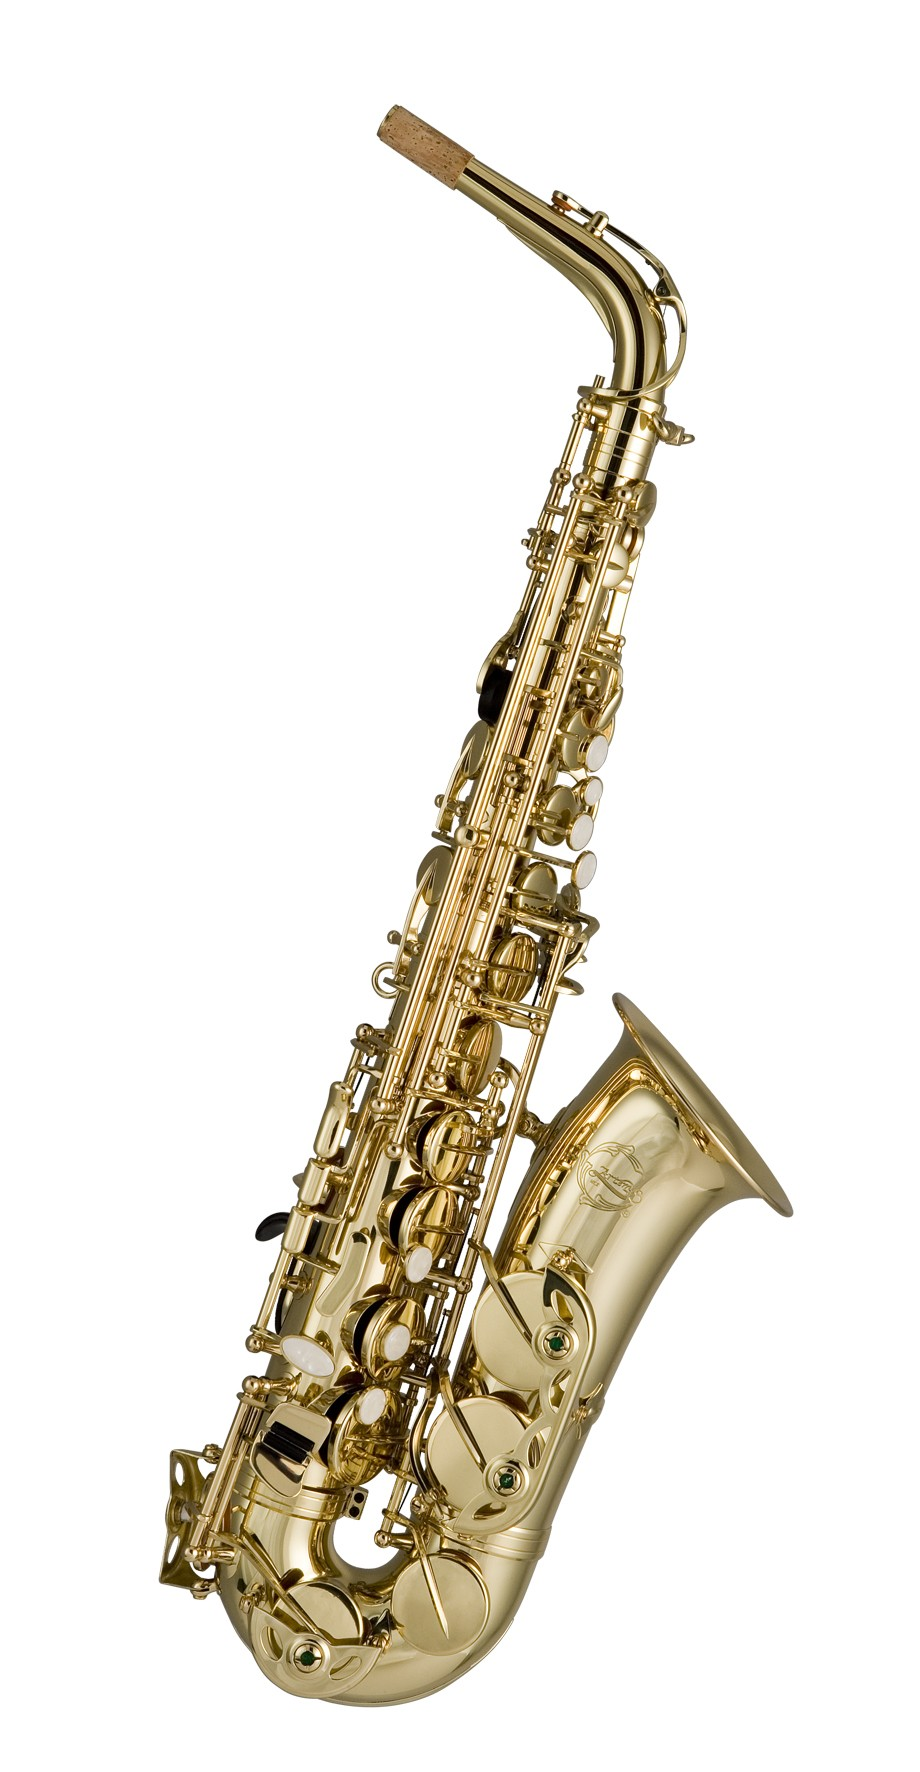 Artemis Alto Saxophone Model 3757A1 Gold lacquer outfit.To Rent or Buy